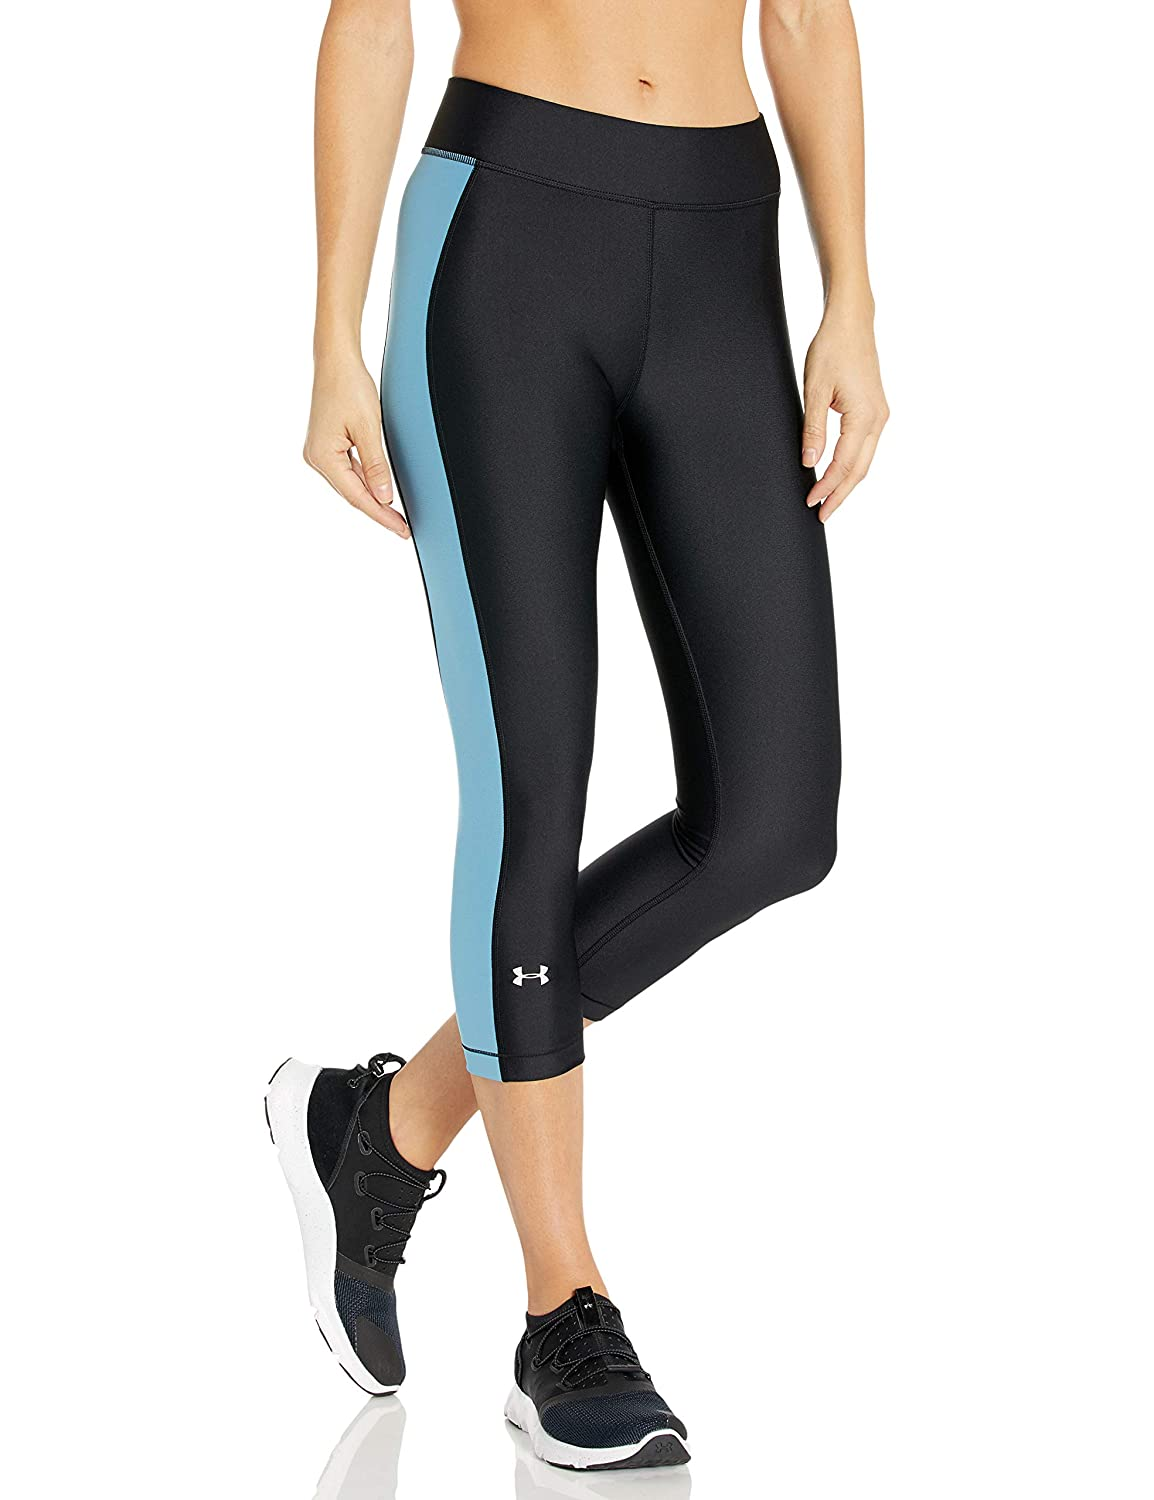 Fast-Drying Workout Leggings for Women Under Armour Womens Hg Armour Capri Yoga Pants Three Quarter Leggings Made from Ultralight Fabric